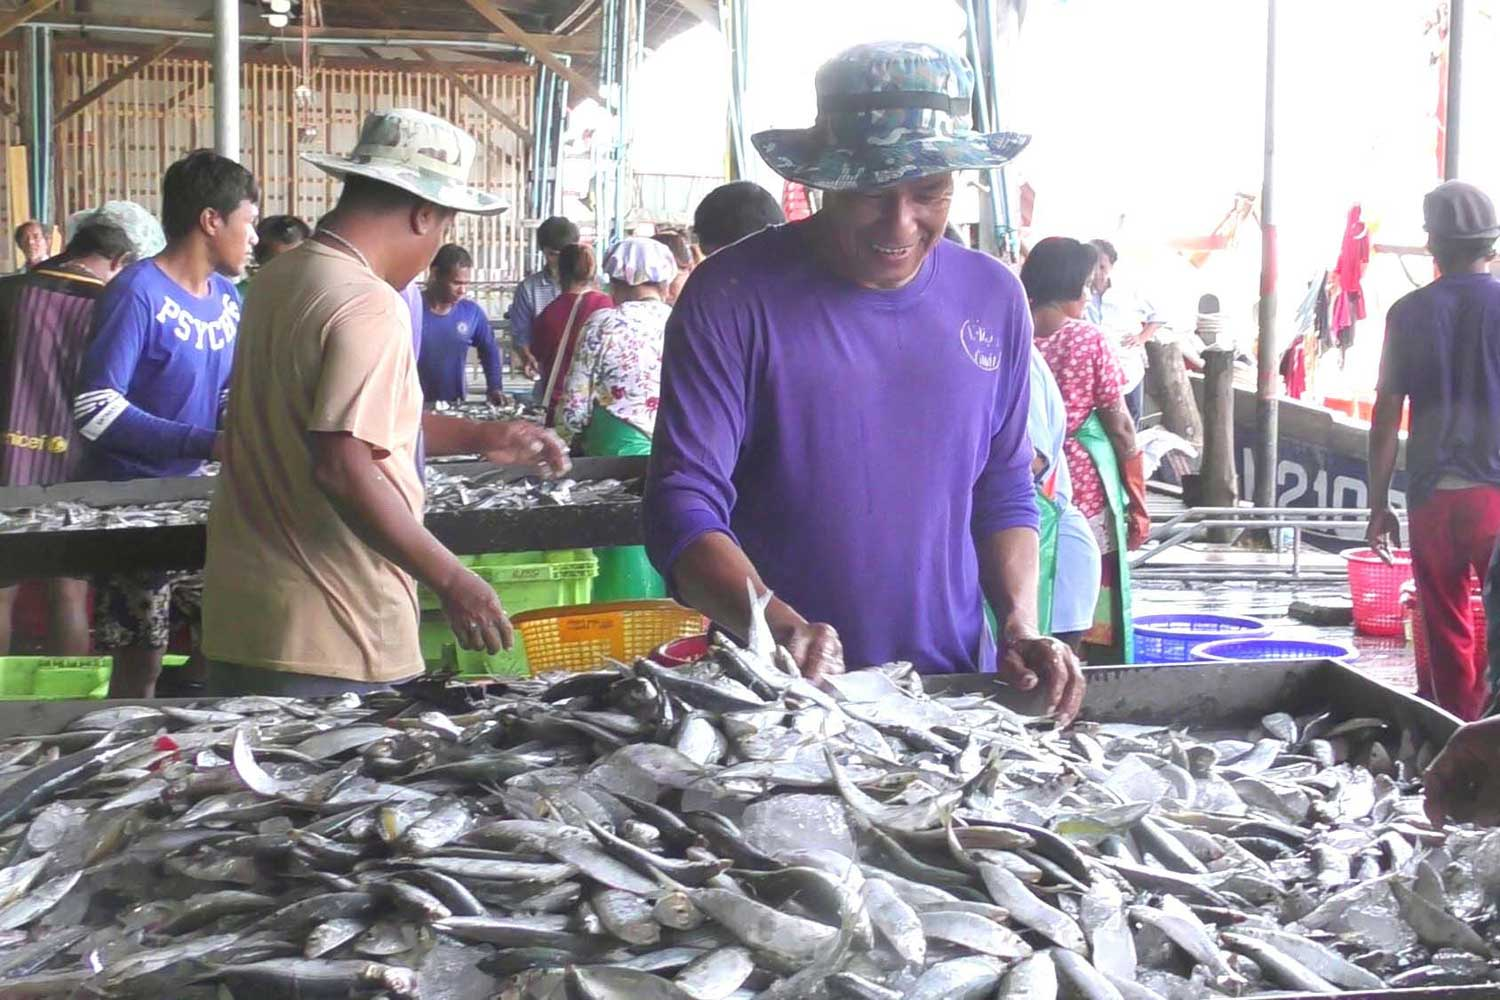 Fish on sale at a Trang fresh market. Researchers have found microplastic waste in the stomachs of mackerel caught in Trang province. (Photo by Methee Muangkaew)